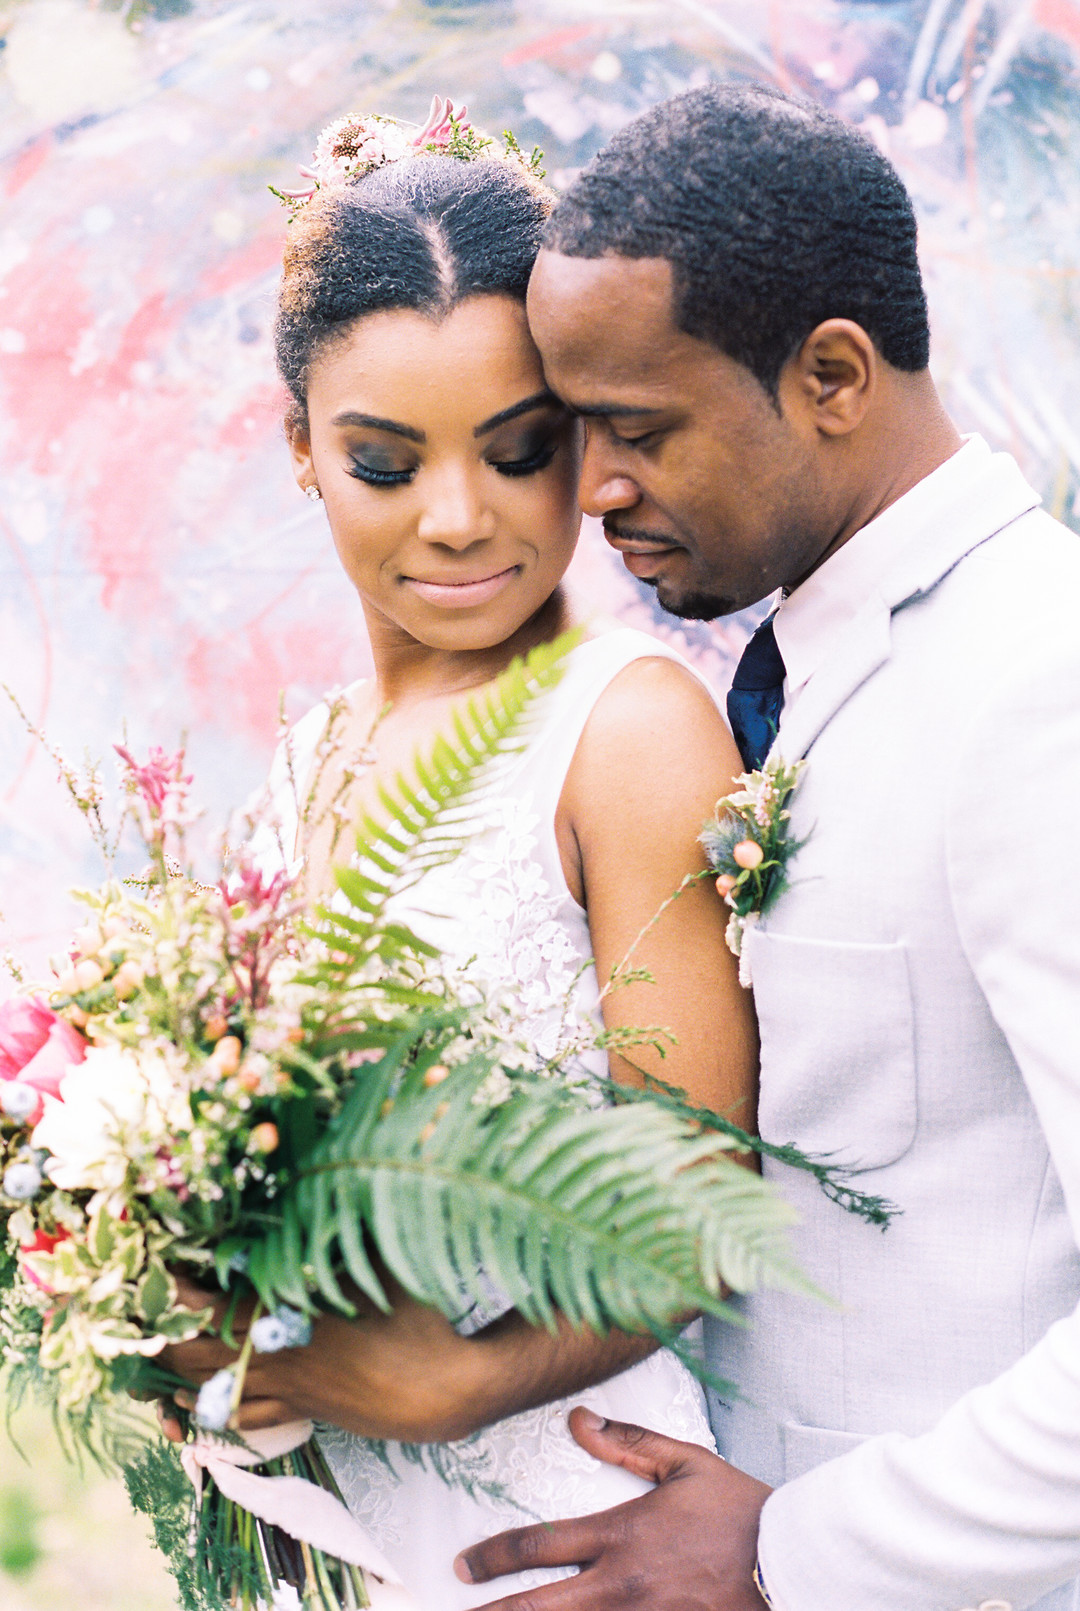 223wi7t7ukhtf8eugy42_big Hot Springs, NC Wedding Inspiration at Mountain Magnolia Inn